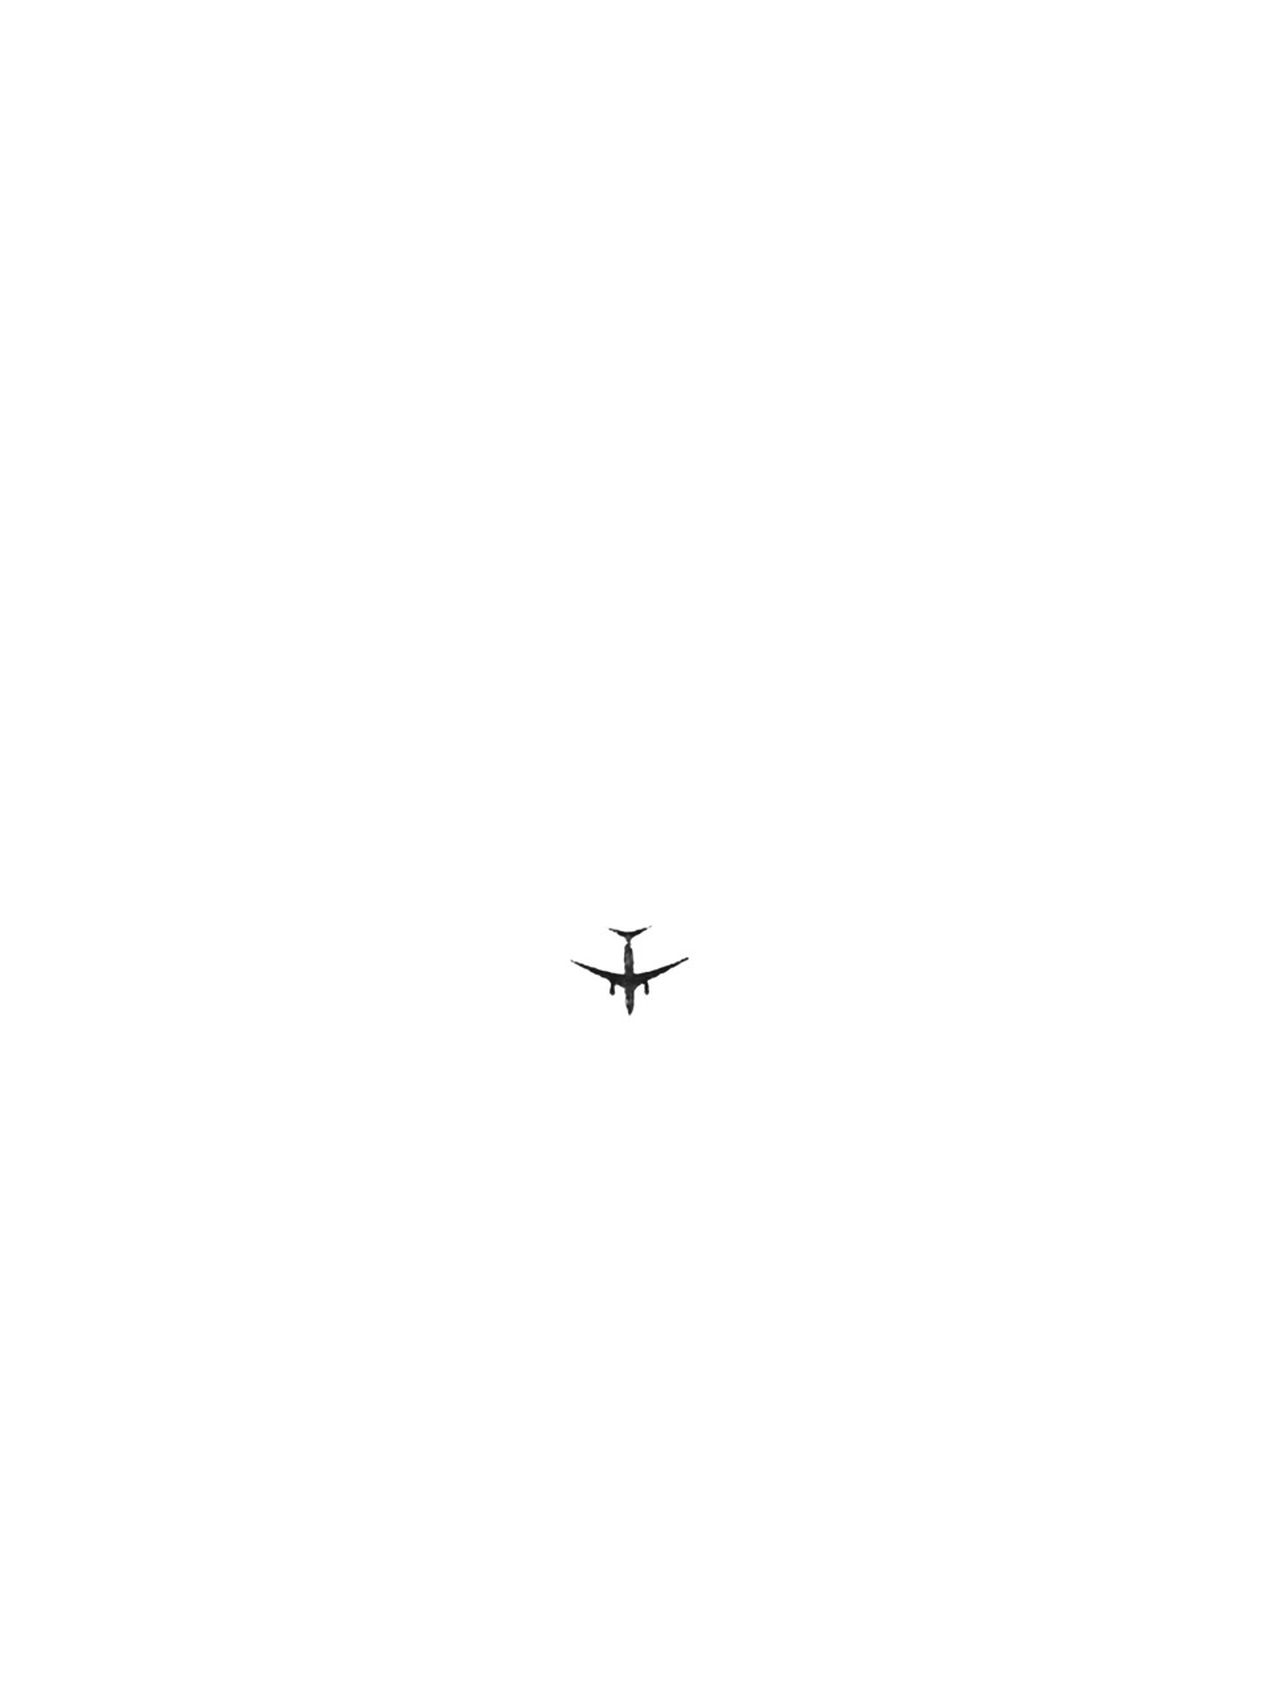 Beautiful stock photos of airplane, NULL